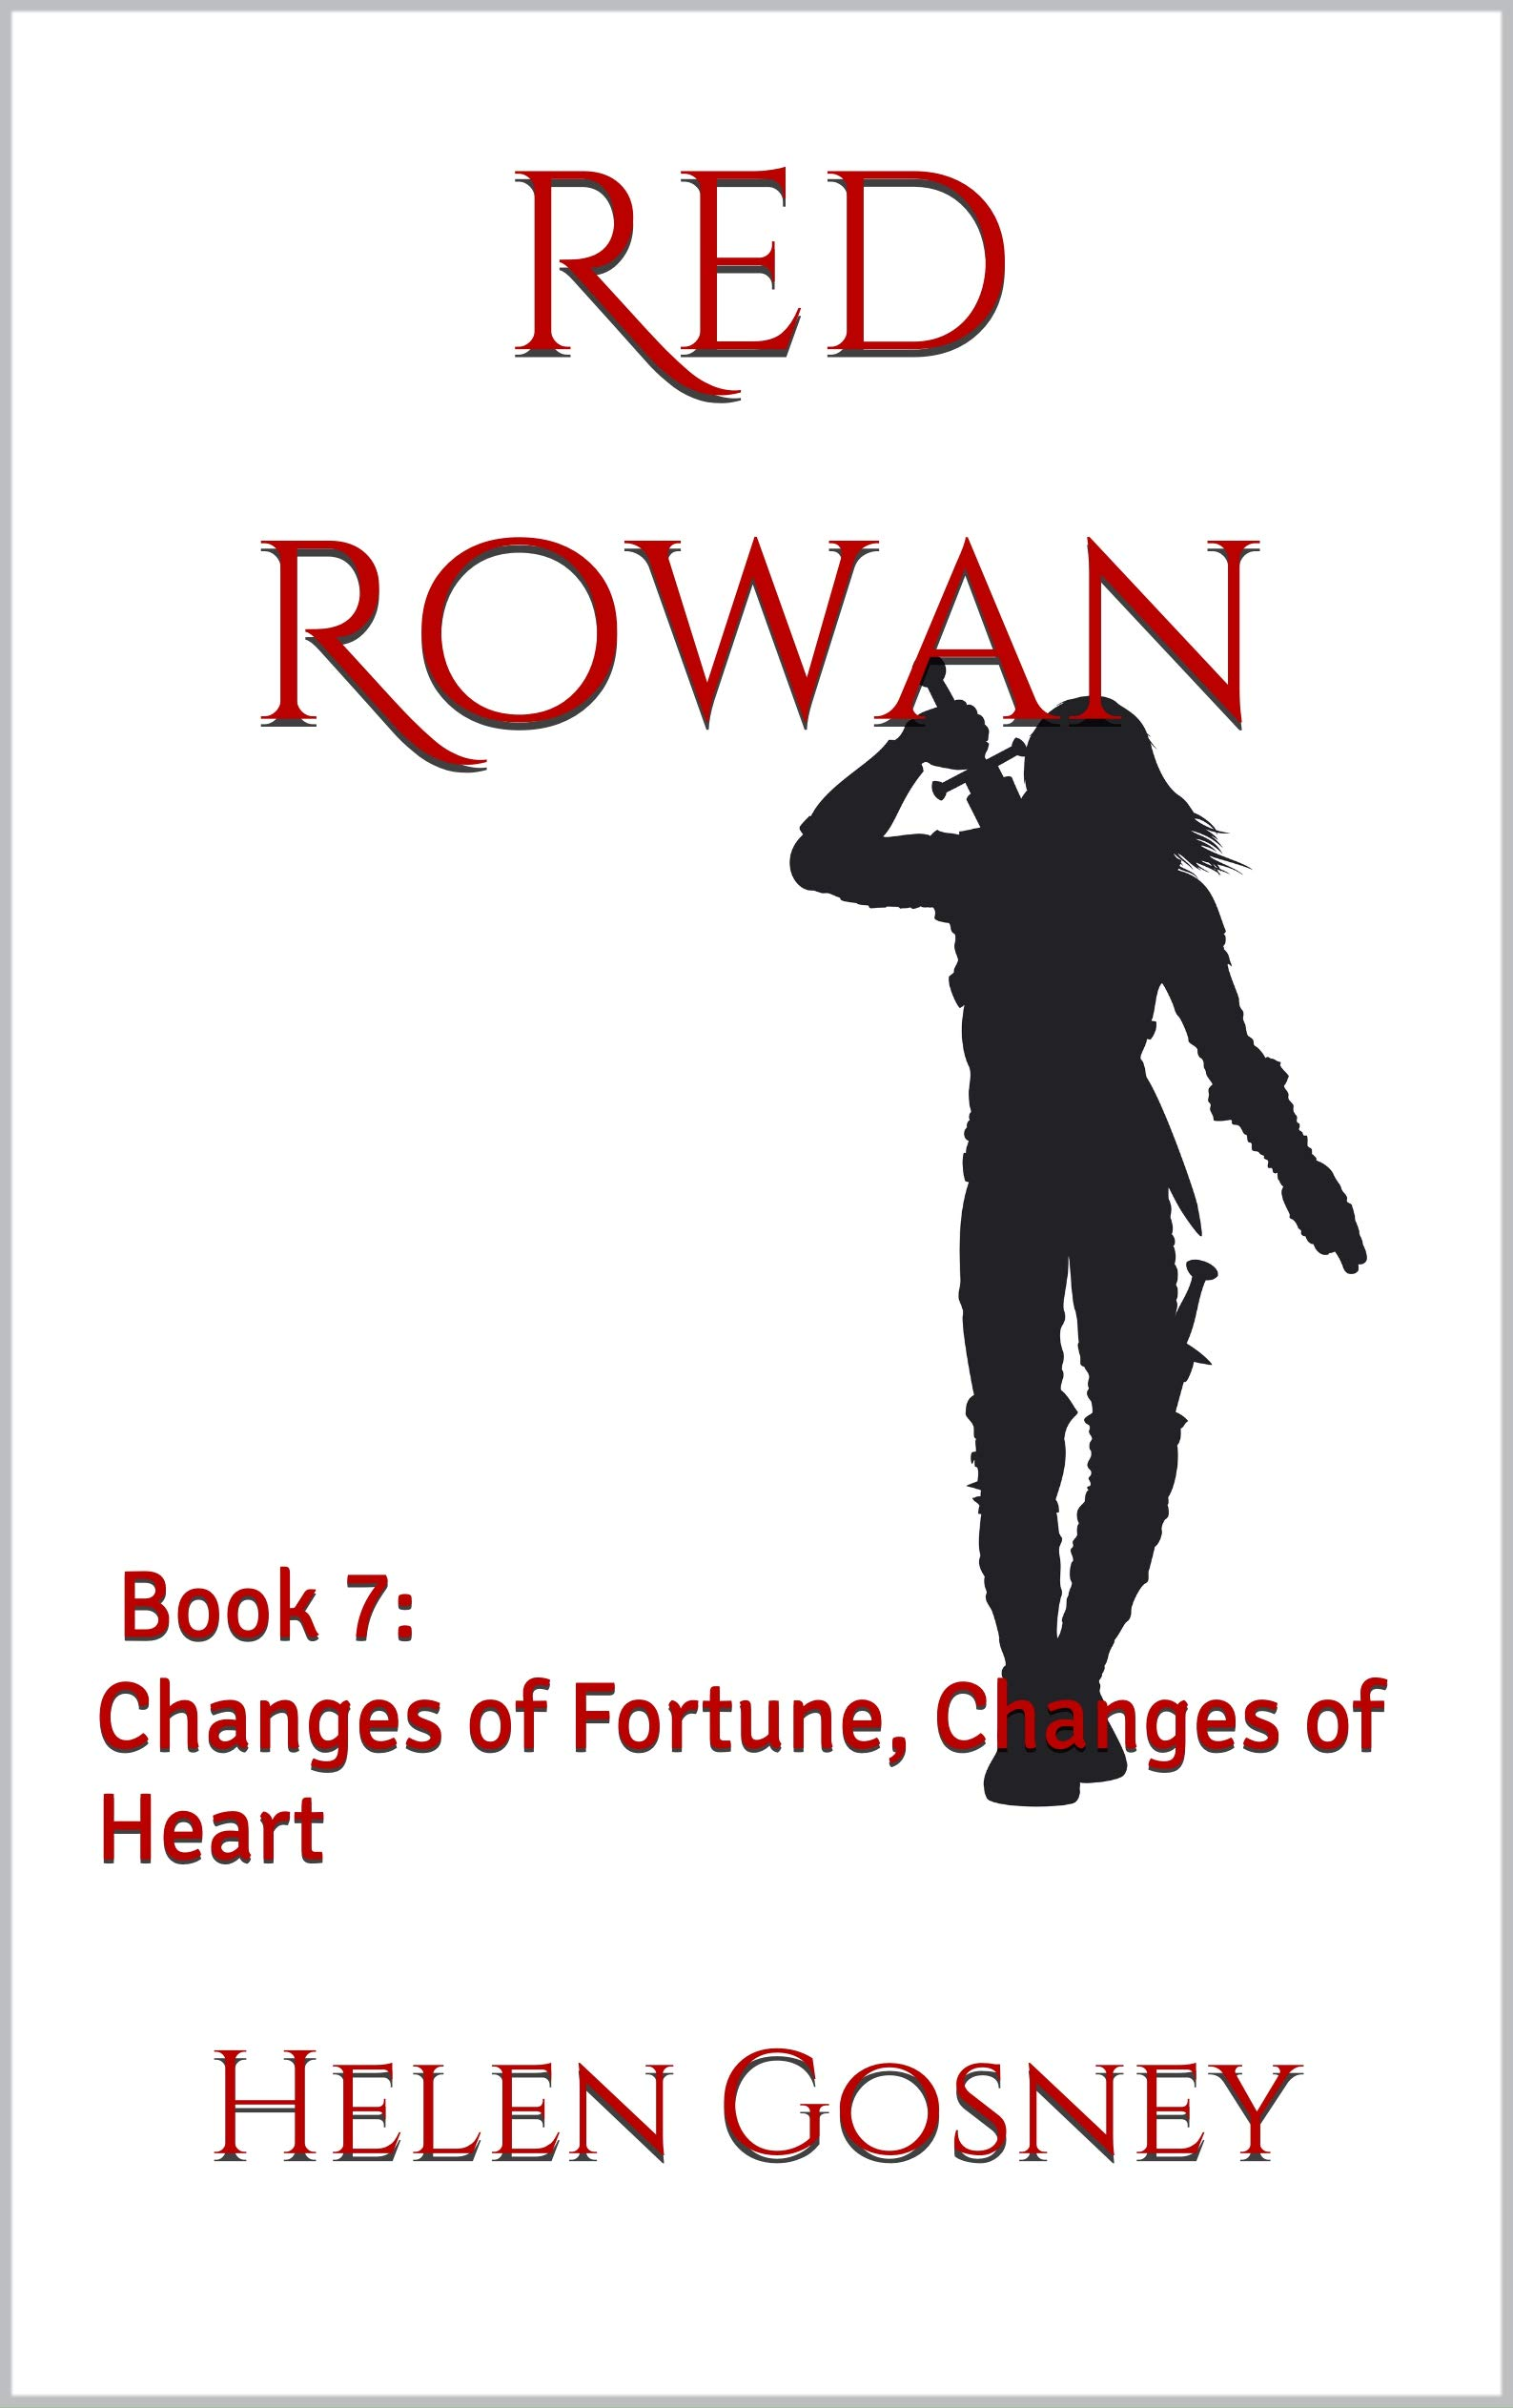 Red Rowan: Book 7: Changes of Fortune, Changes of Heart